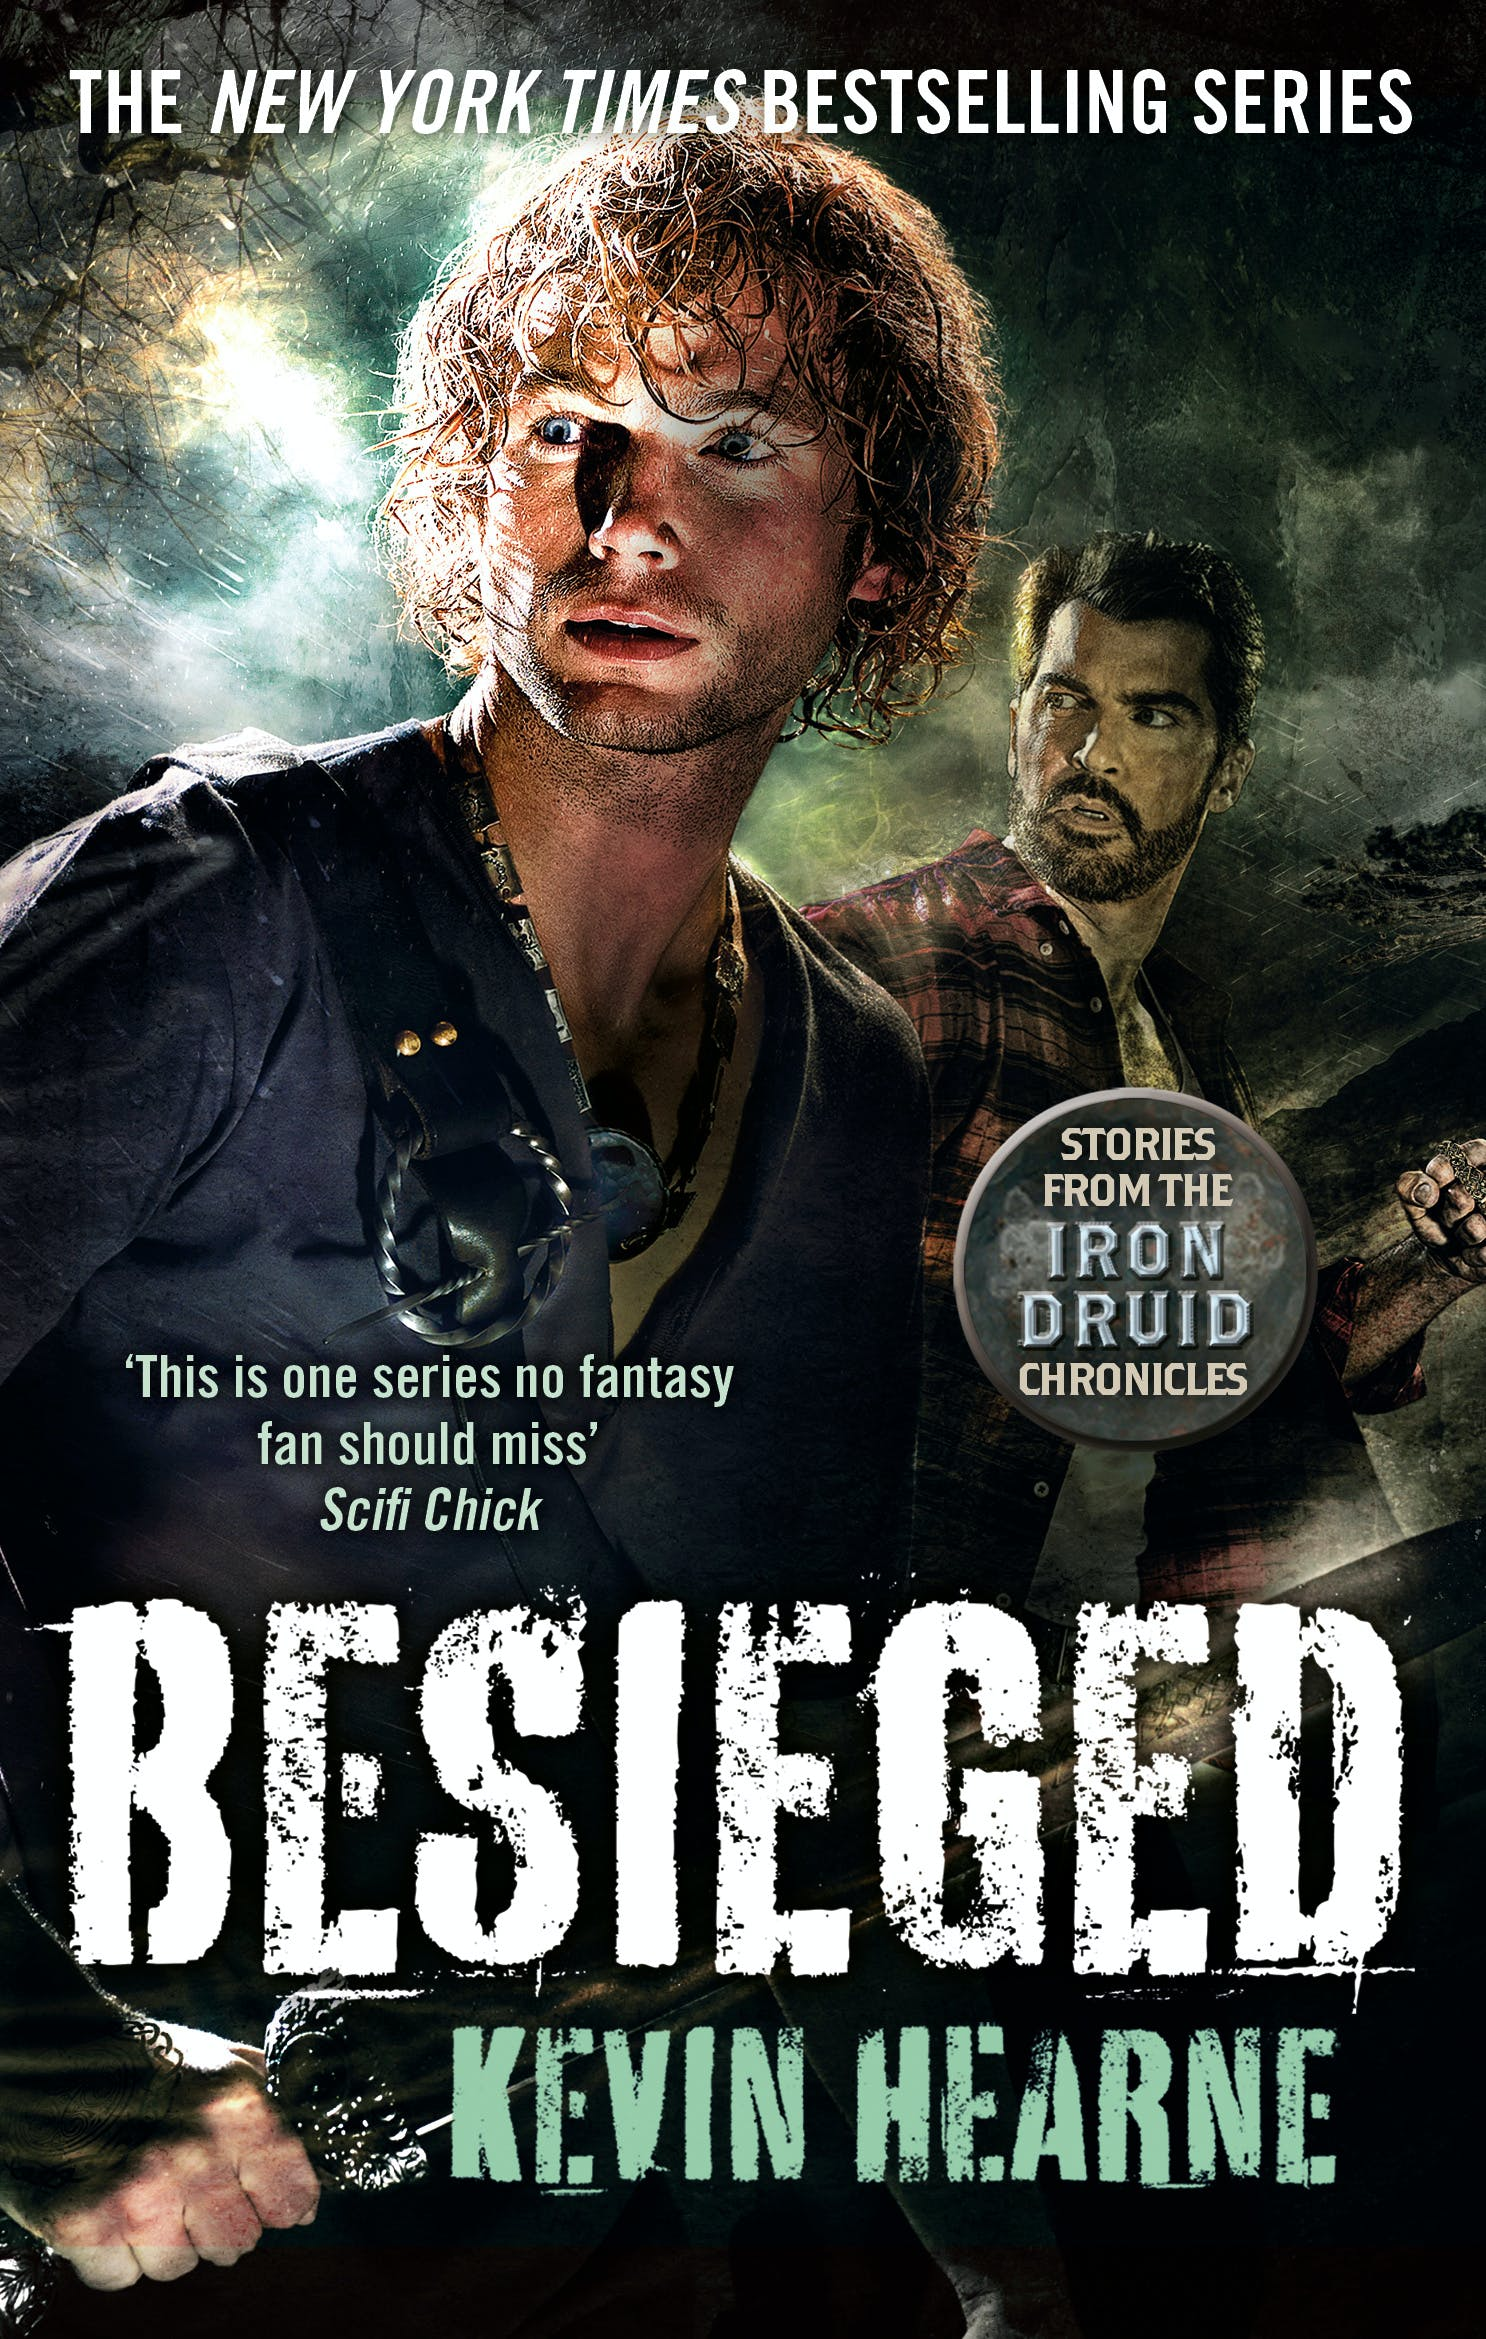 Besieged Stories From The Iron Druid Chronicles By Kevin Hearne Books Hachette Australia